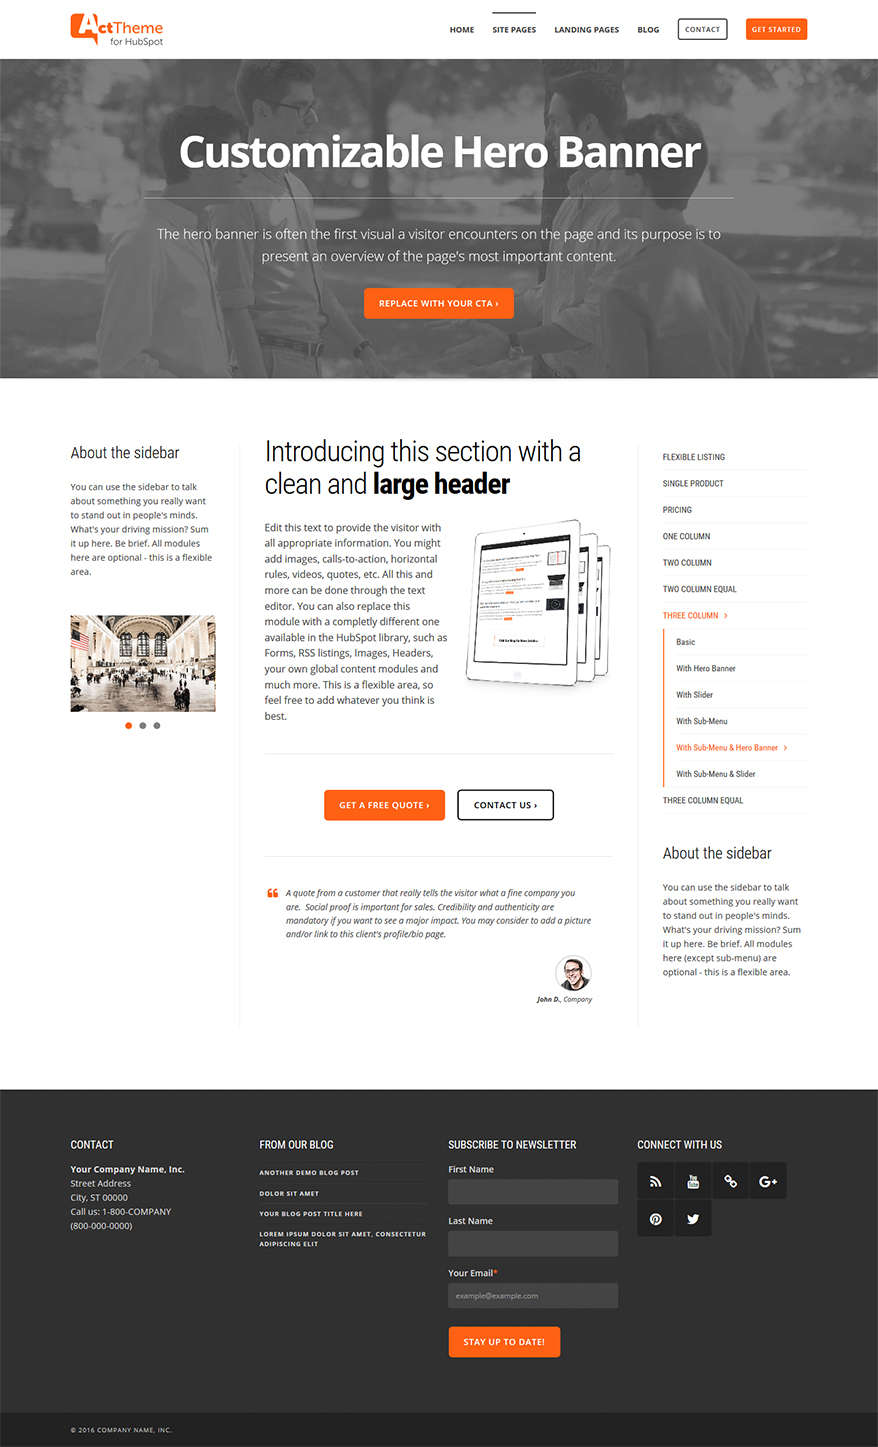 Act Three Column, Hero, Sub-Menu - Site Page Template for HubSpot